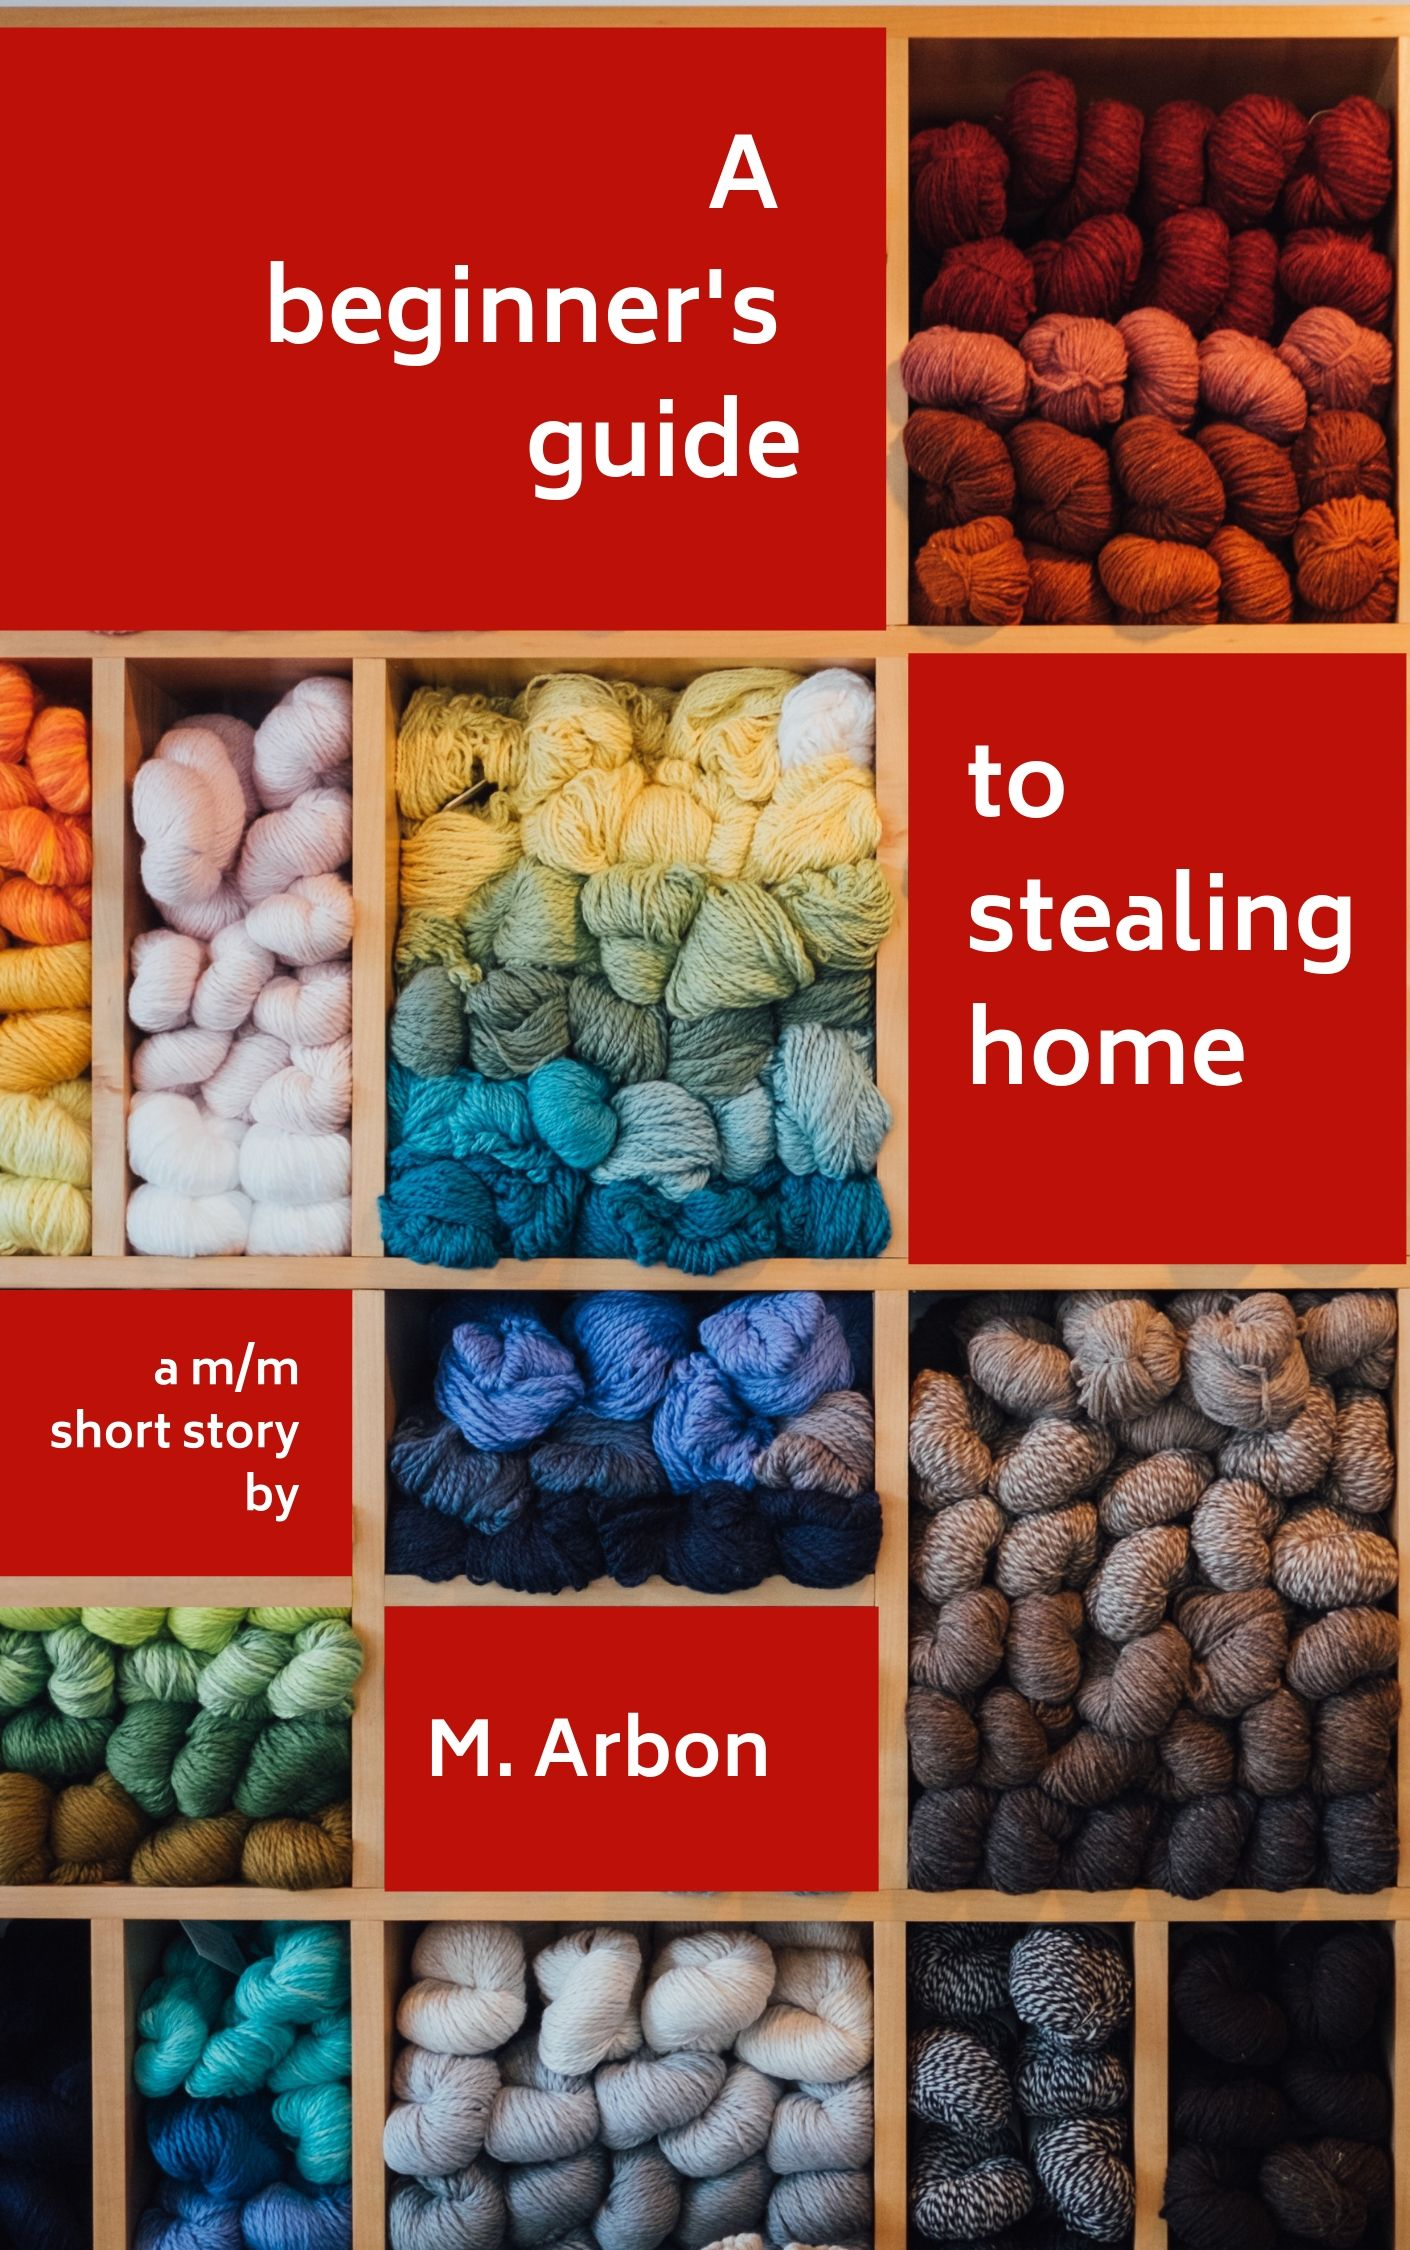 Cover of A Beginner's Guide to Stealing Home showing colourful yarn in cubbyholes